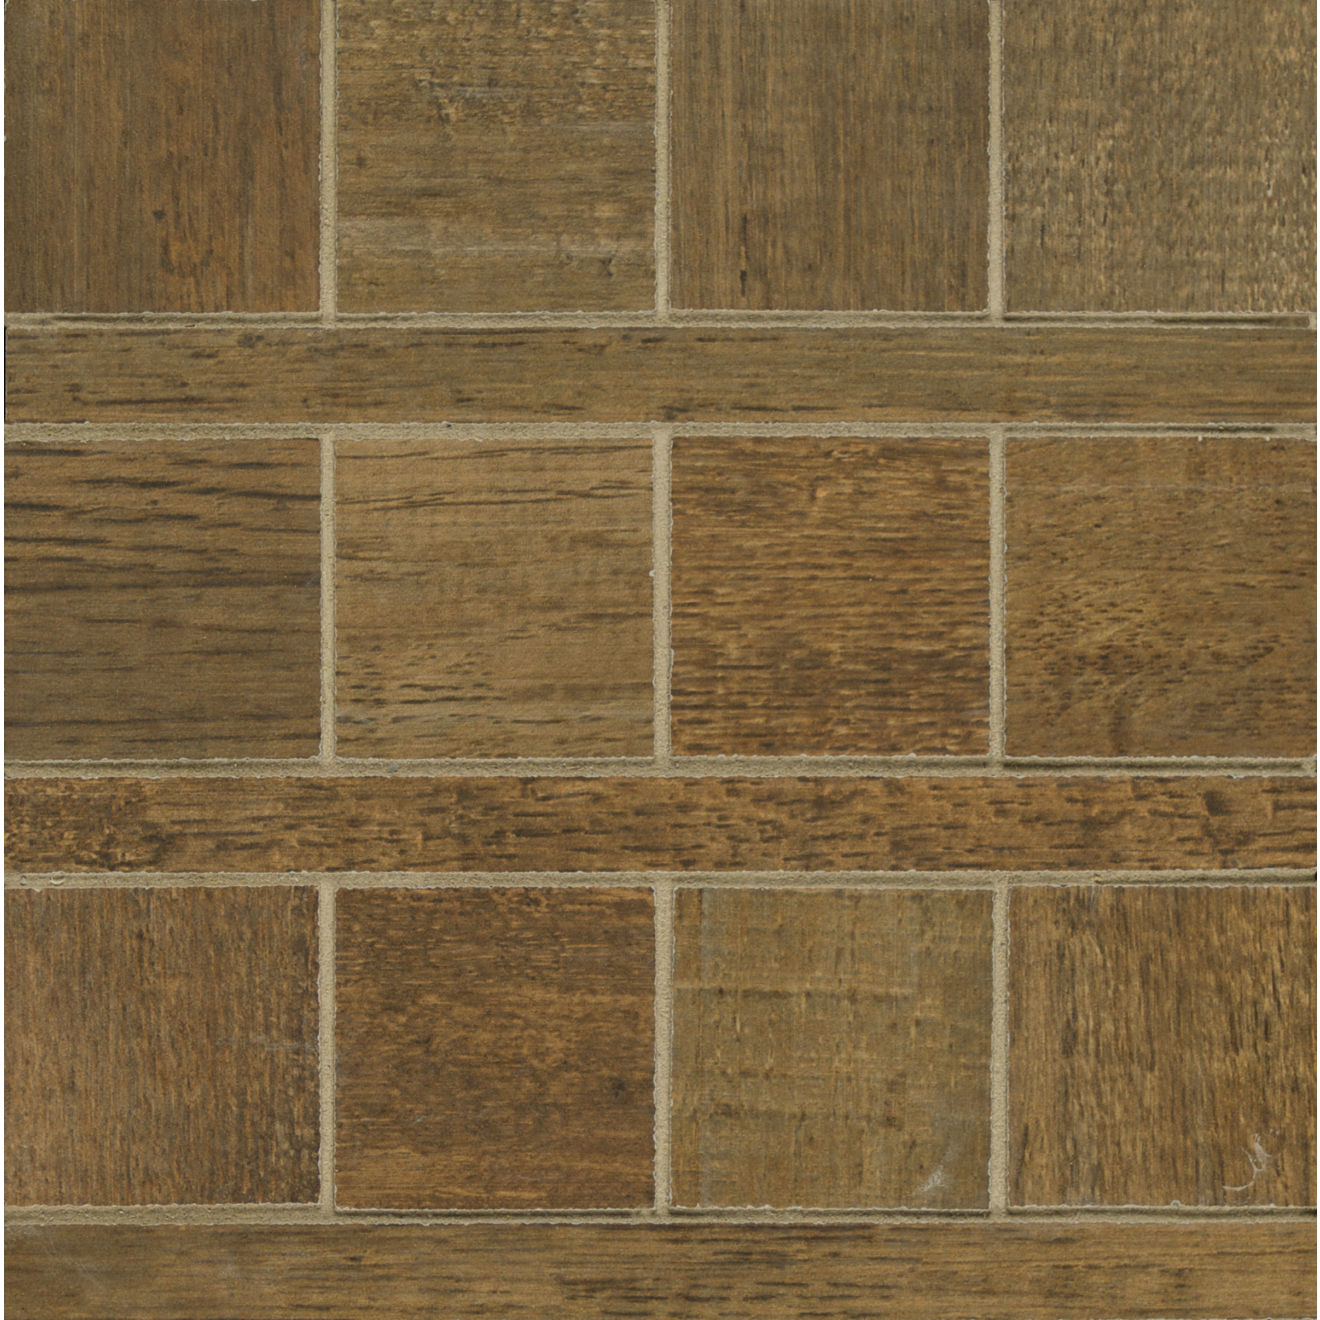 Barrique Floor & Wall Mosaic in Vert